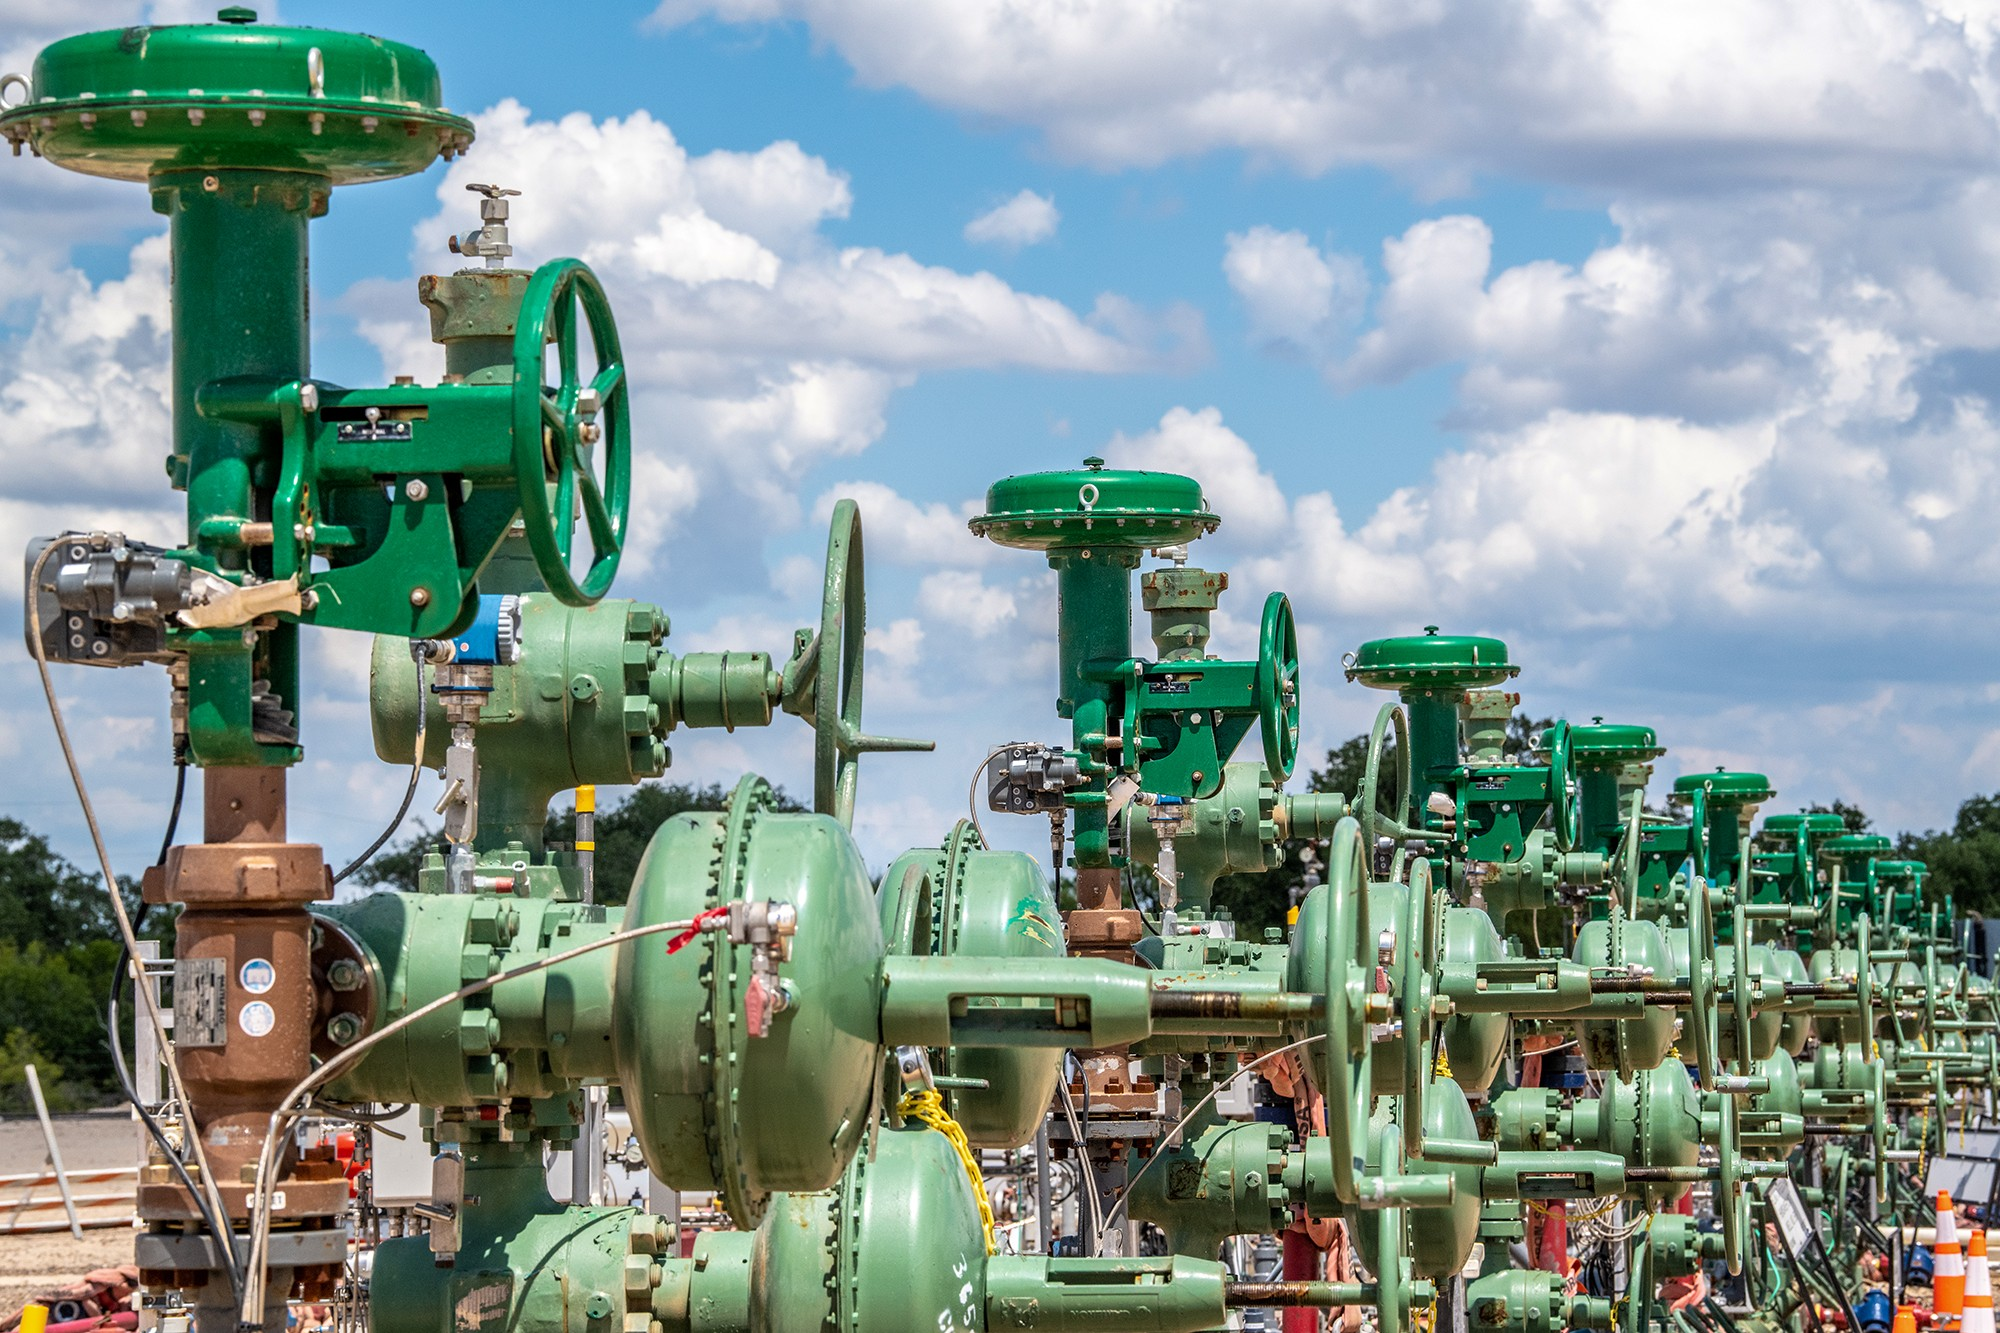 A line of wellheads with a background of blue sky and fluffy clouds